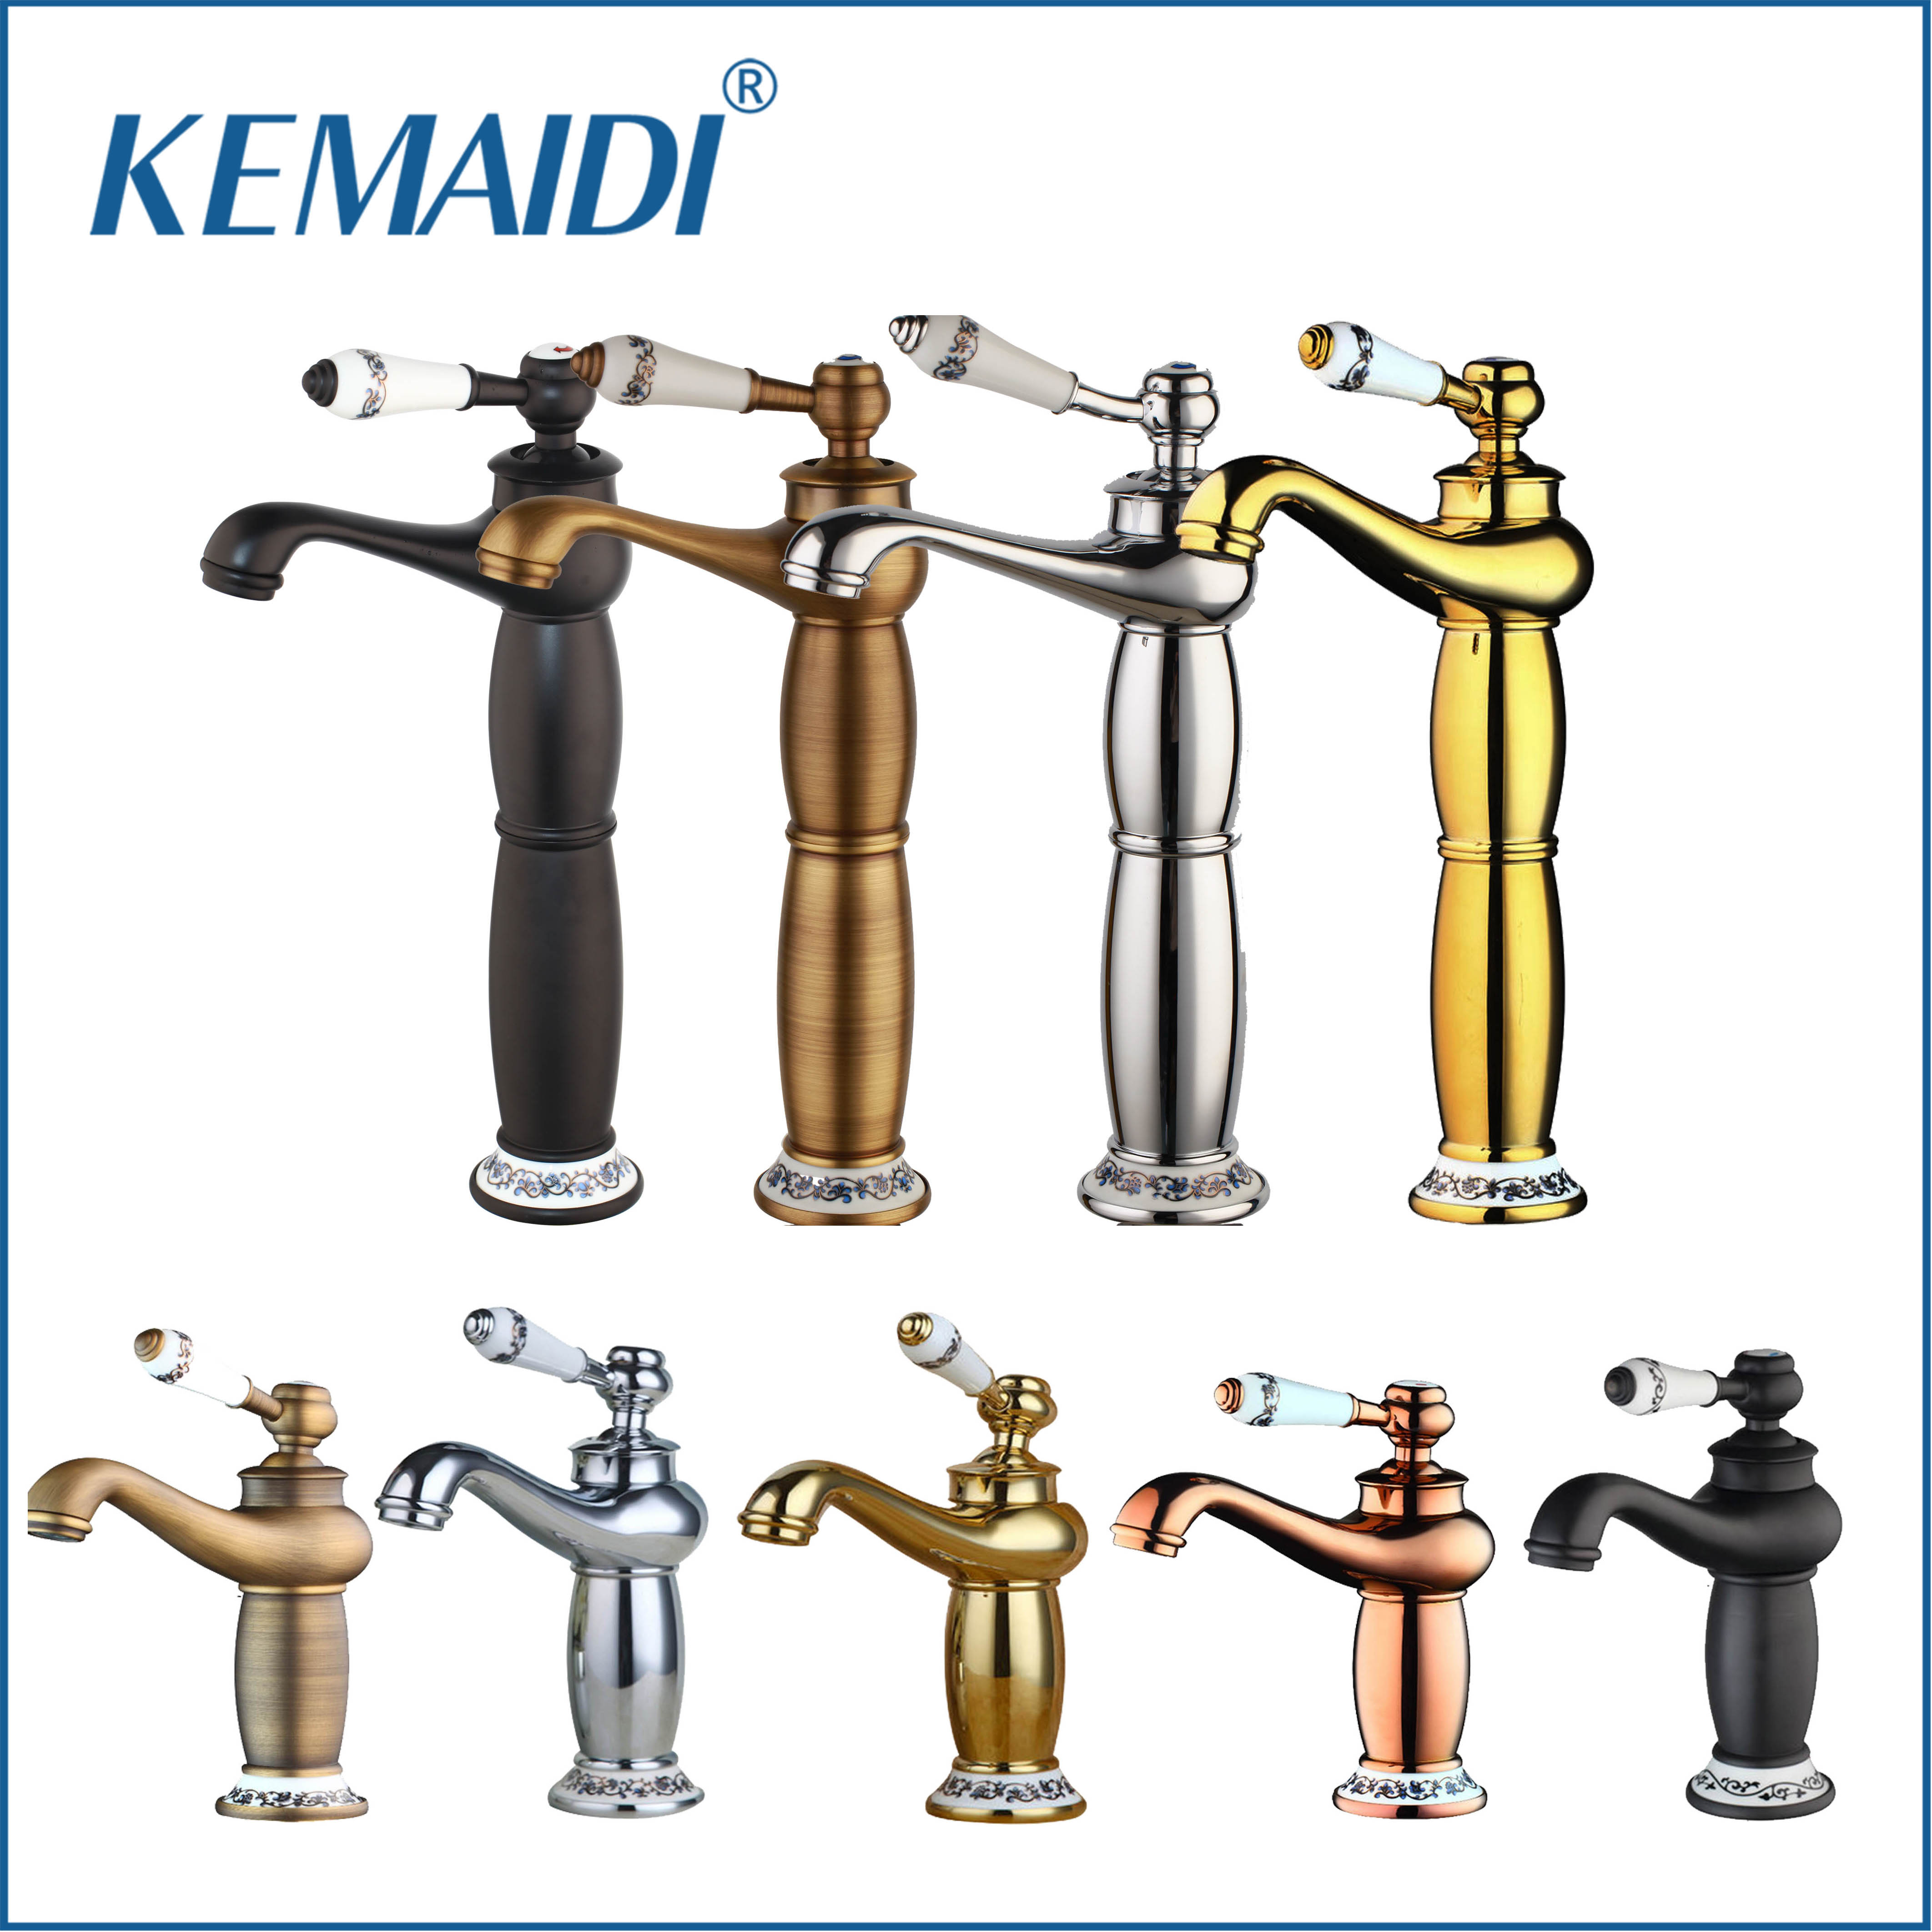 KEMAIDI Tall Antique Brass/Chrome Basin mixer Golden Bathroom Faucets Single Handle Single Hole Cold&Hot Water Tap torneiraKEMAIDI Tall Antique Brass/Chrome Basin mixer Golden Bathroom Faucets Single Handle Single Hole Cold&Hot Water Tap torneira